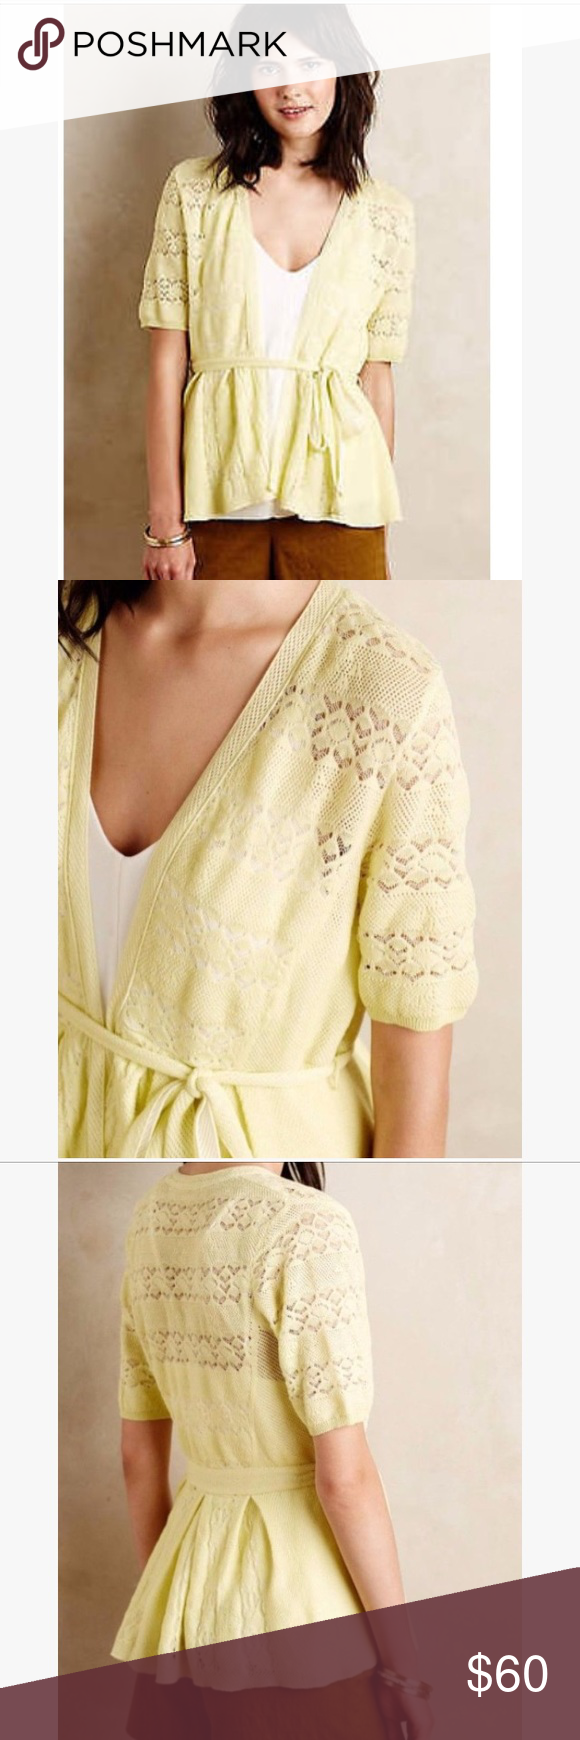 Anthropologie Knitted & Knotted Lace Cardigan NWT | Yellow lace ...